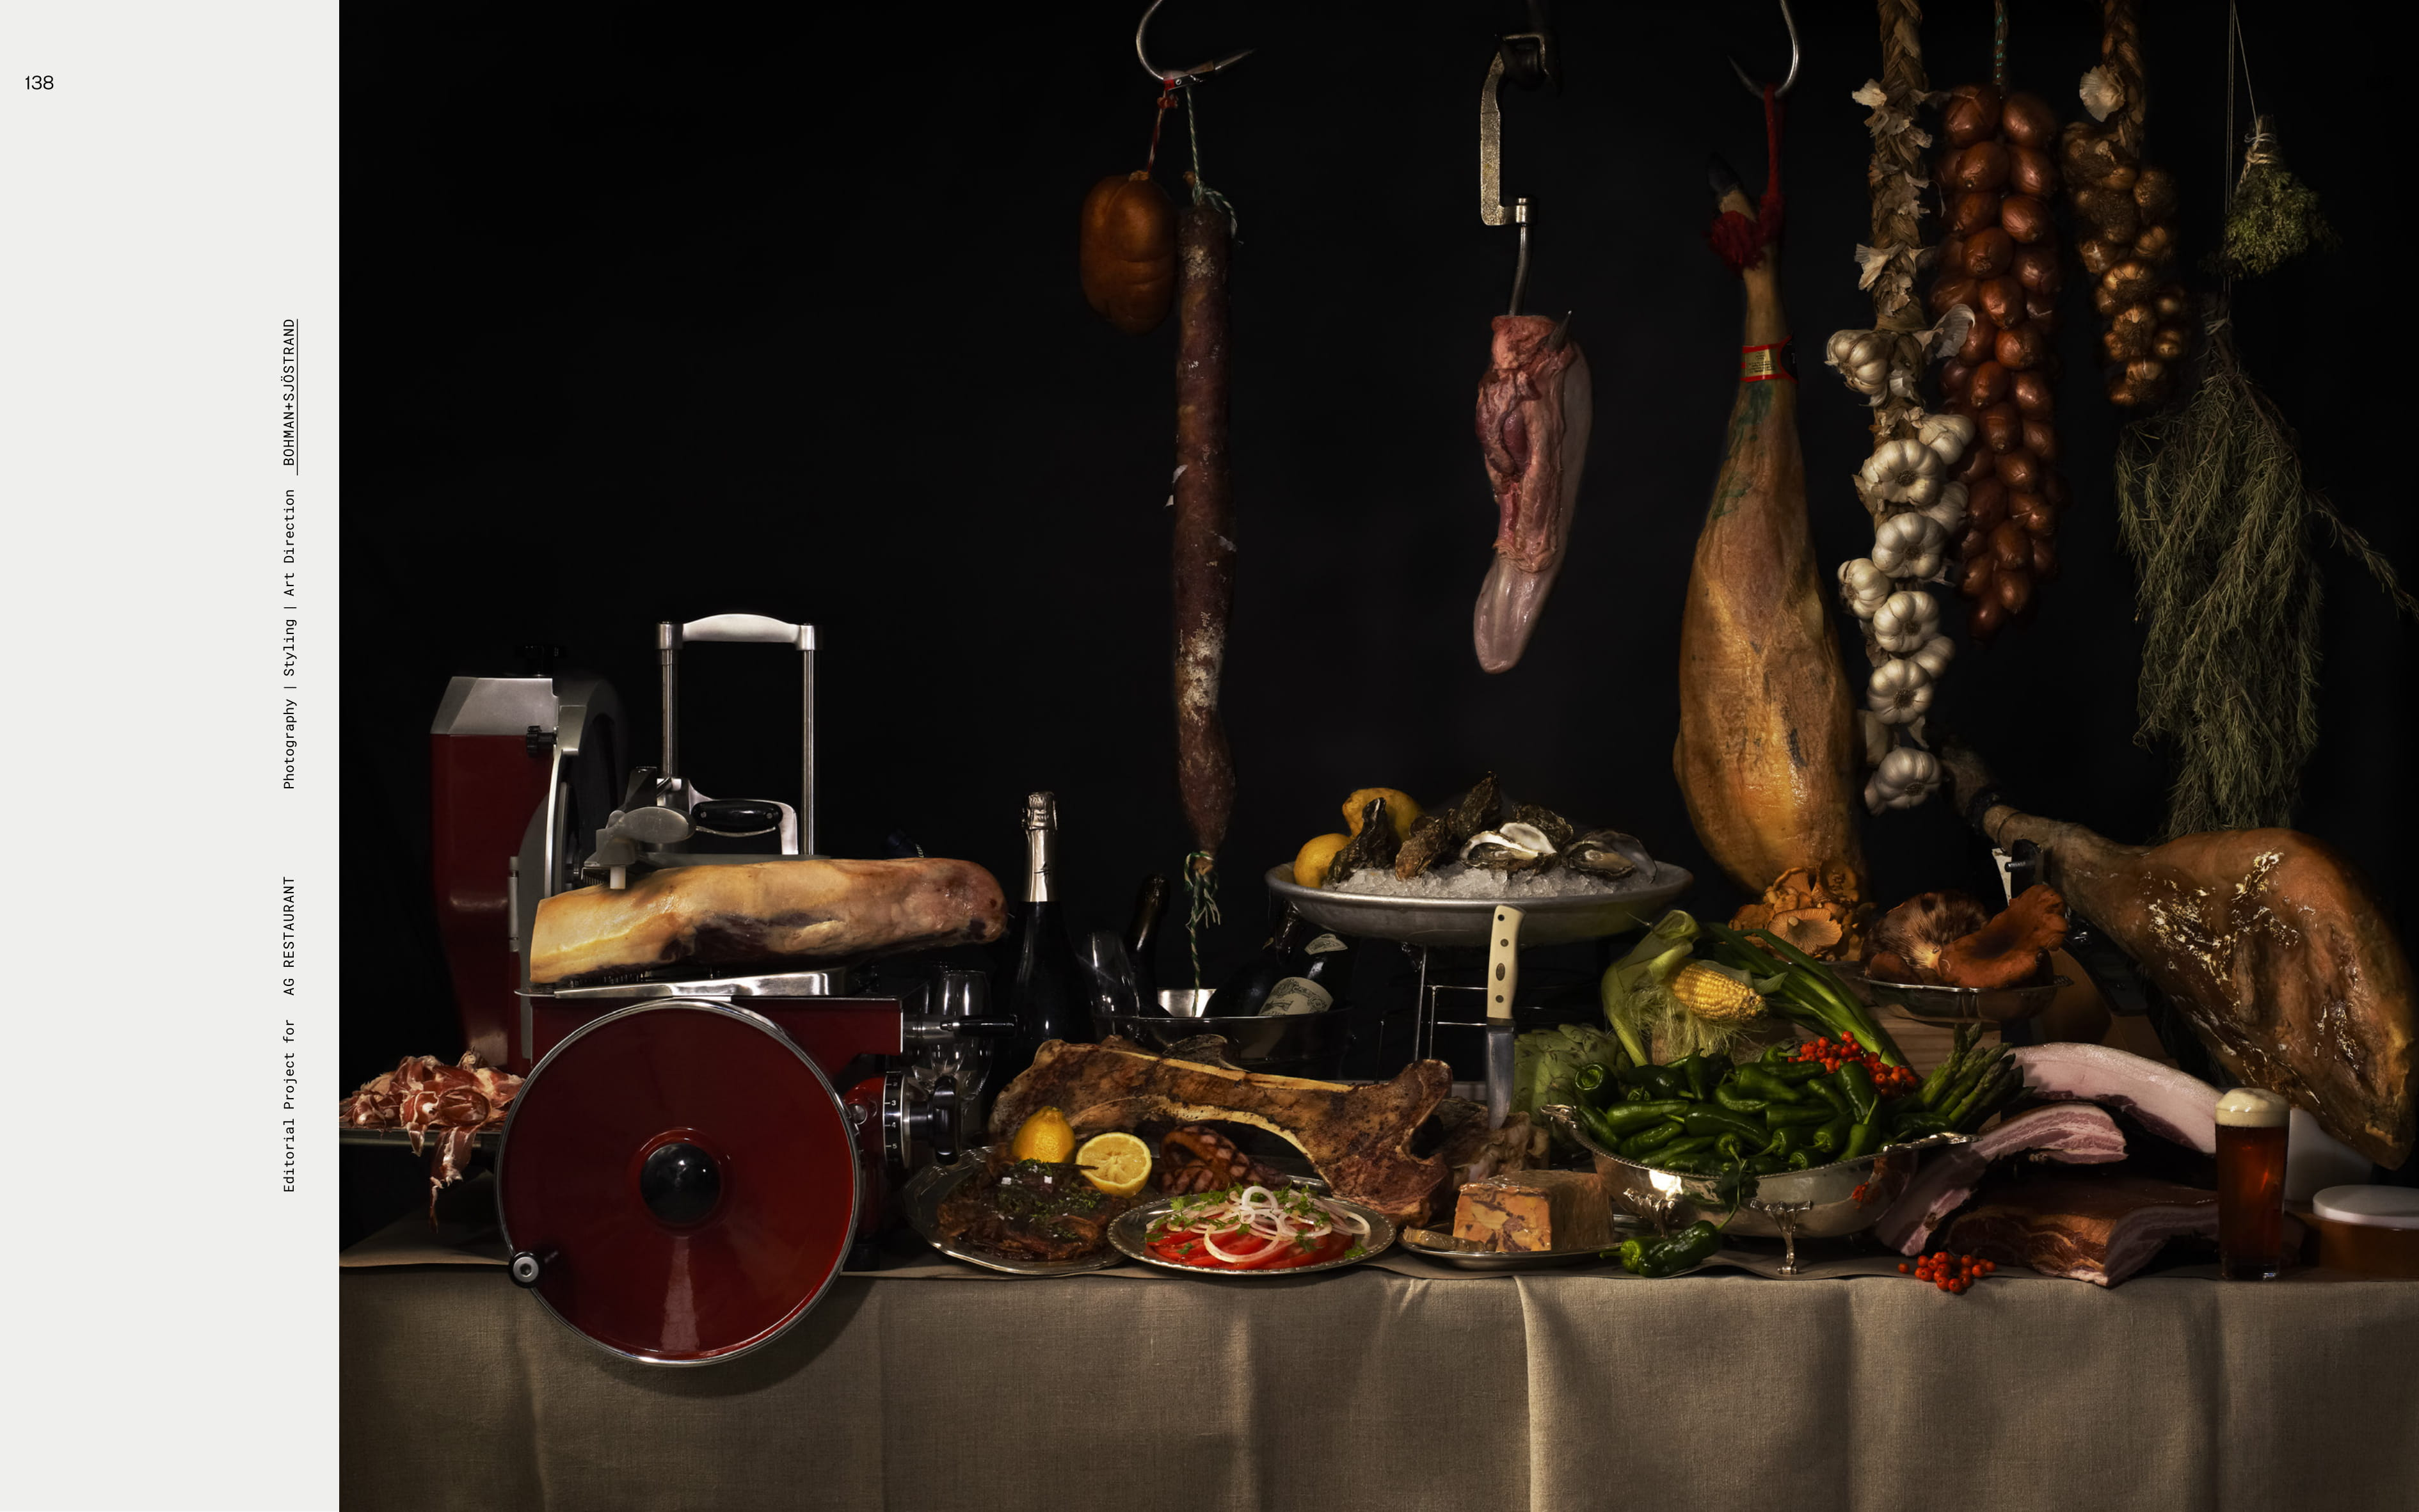 From Visual Feast Contemporary Food Staging and Photography copyright Gestalten 2017